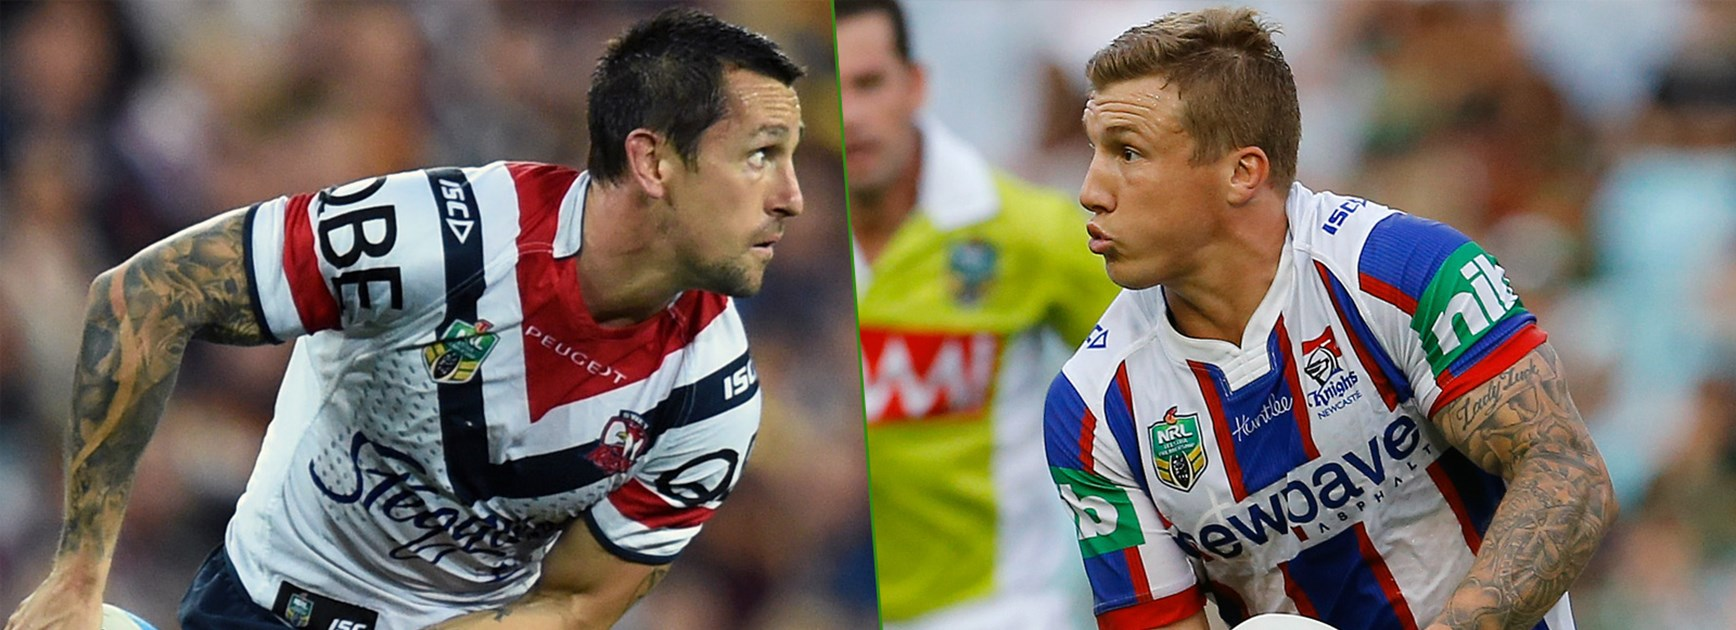 Returning Roosters halfback Mitchell Pearce will line up against his old NSW Origin halves partner Trent Hodkinson this week.